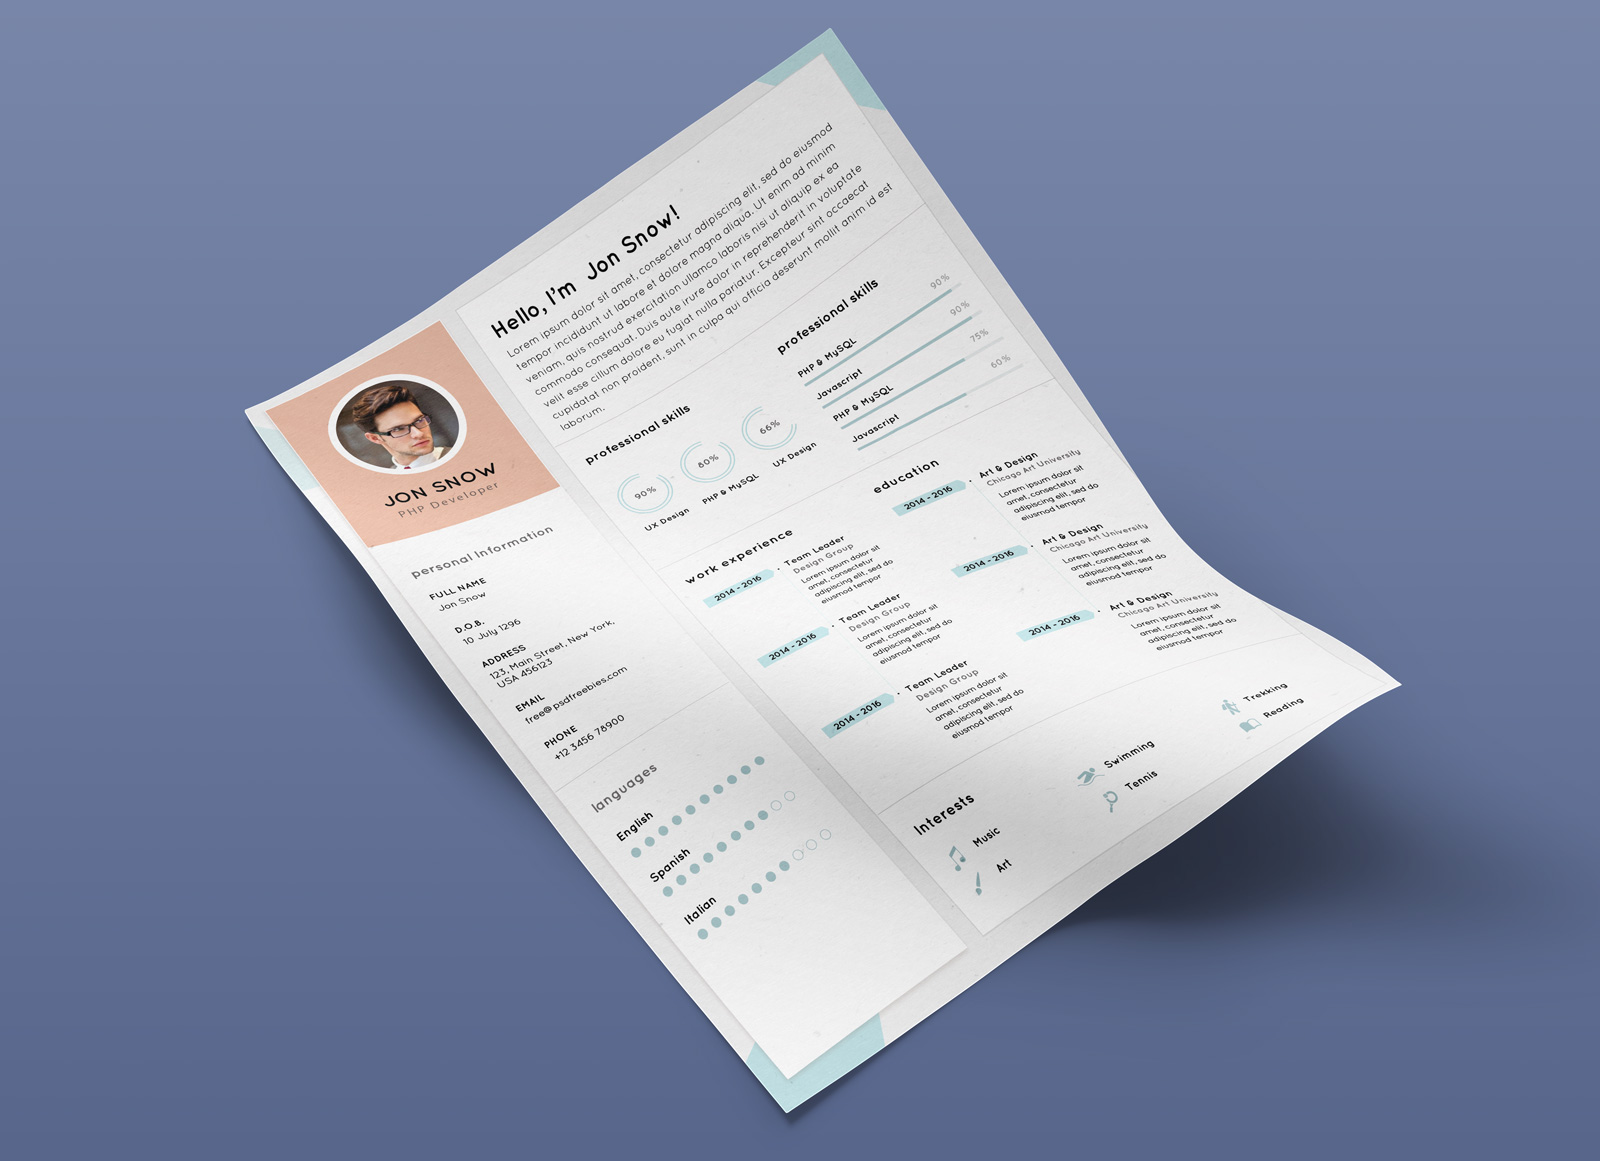 Free-Clean-Resume-CV-Template-PSD-for-PHP-Developer-2